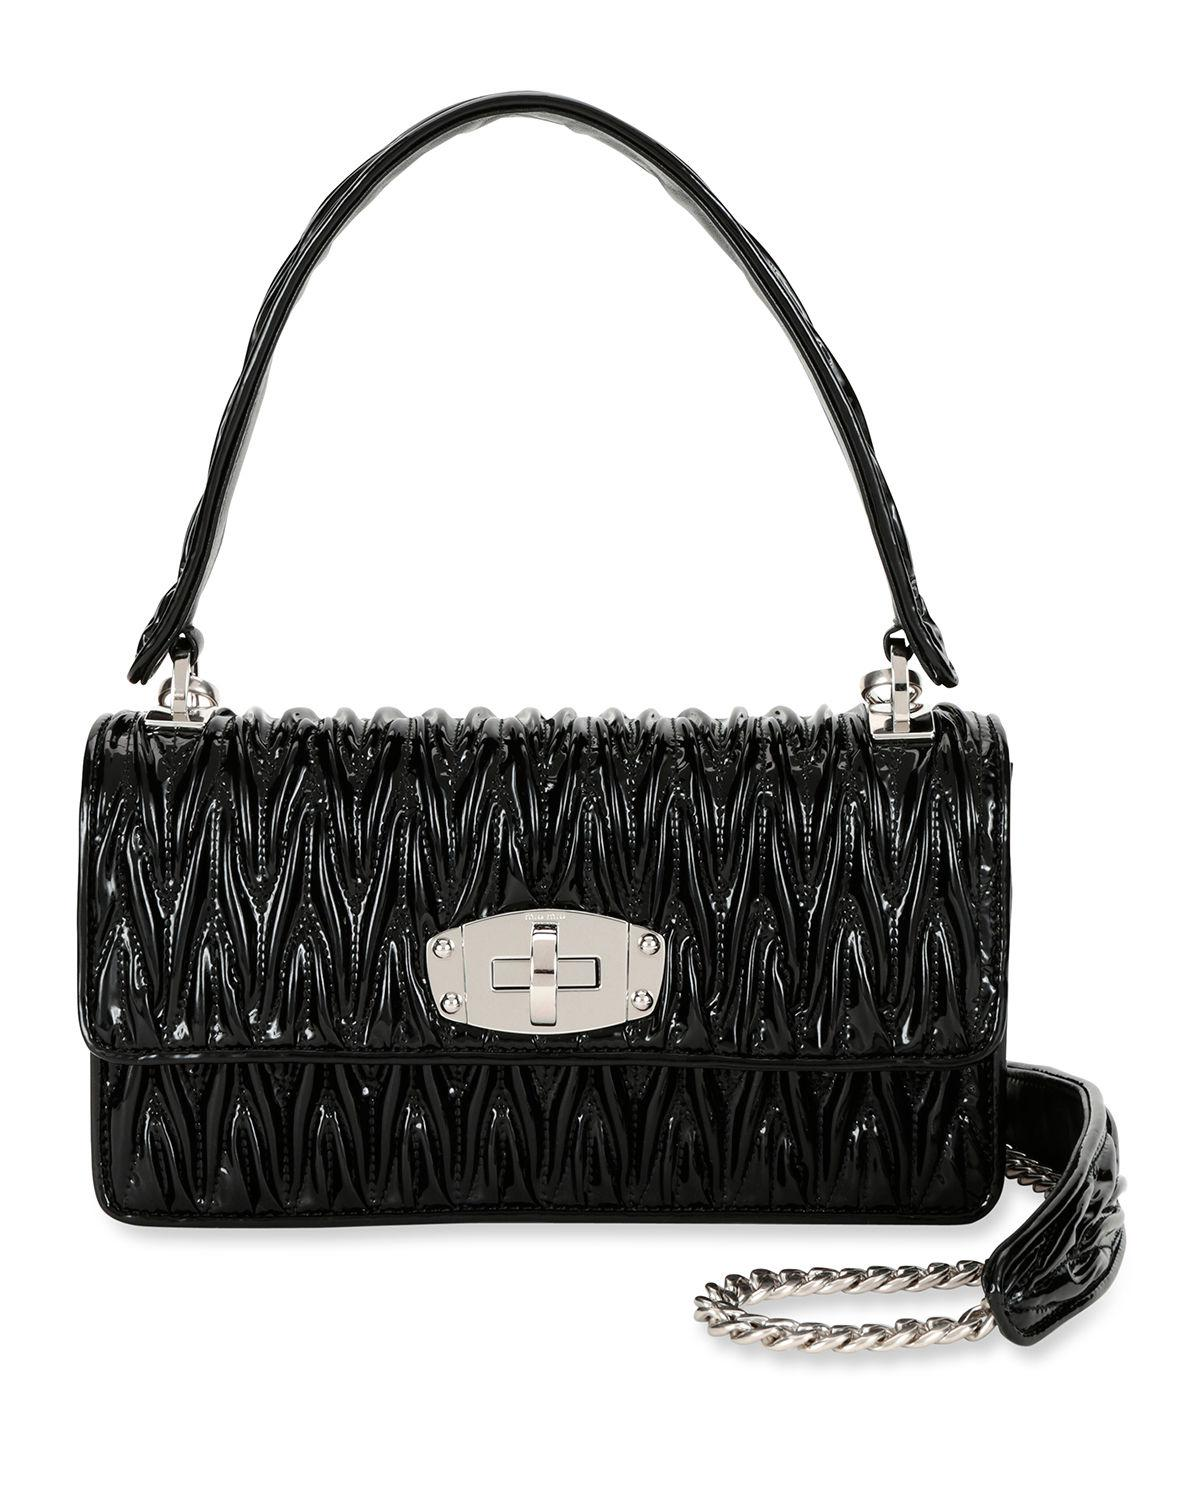 a0cd80cc8ce Lyst - Miu Miu Vernice Matelasse Cleo Top Handle Bag in Black